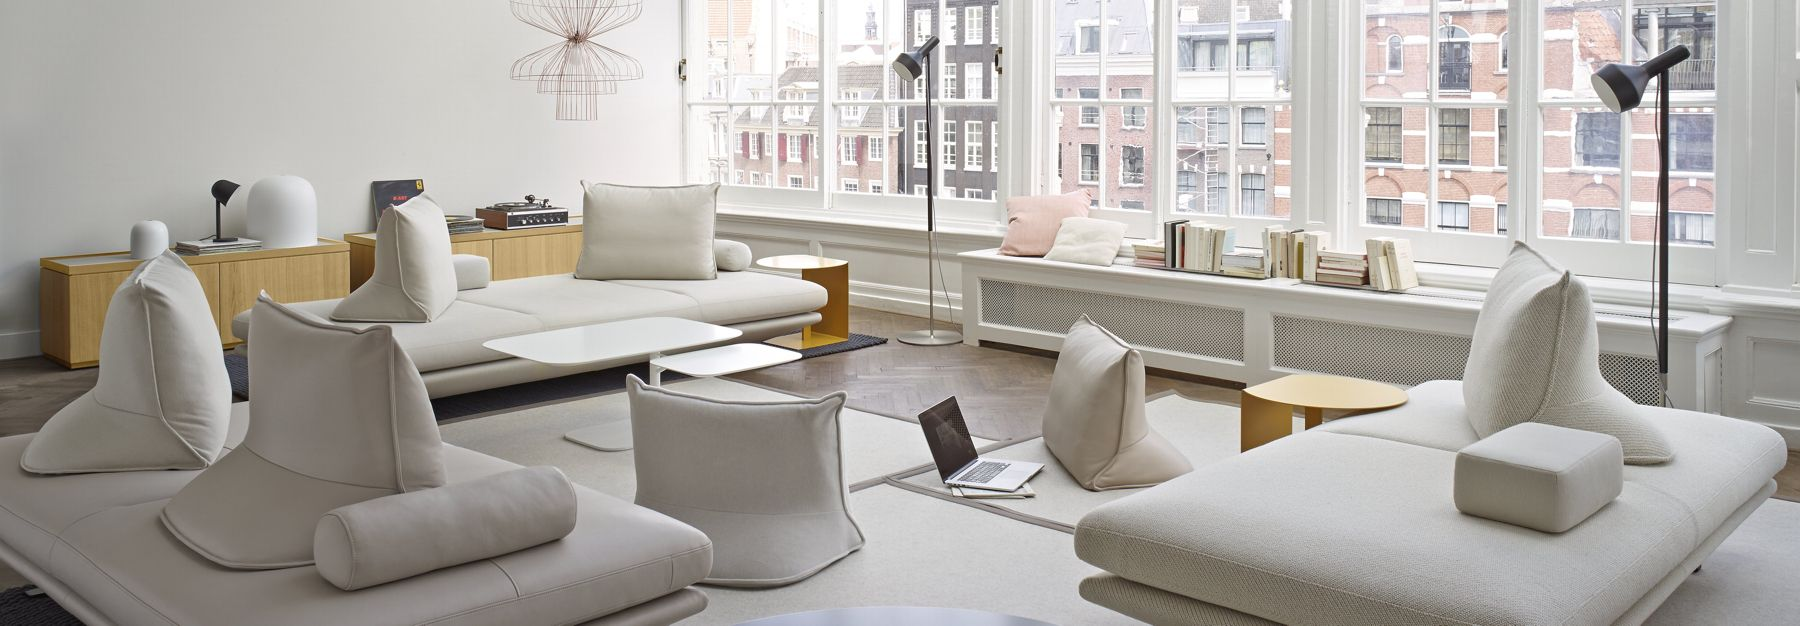 ligne roset prado google s gning interiors we like pinterest ligne roset living rooms. Black Bedroom Furniture Sets. Home Design Ideas